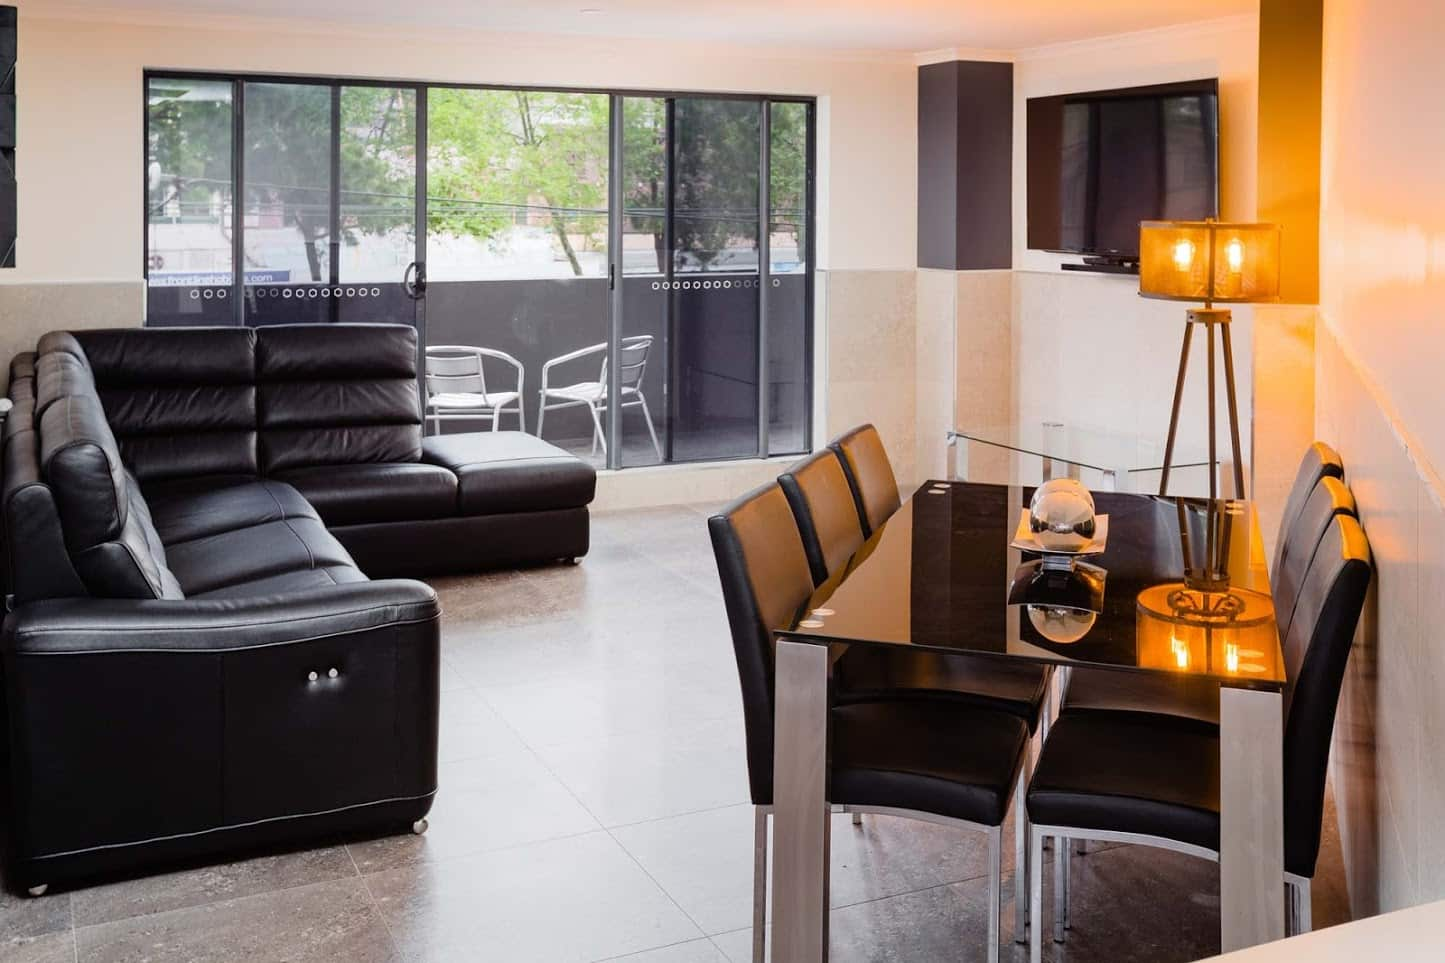 Nautilos on the Harbour - https://www.newcastleapartments.com.au/wp-content/uploads/2019/01/Nau107-Loungeroom-and-Kitchen.jpg